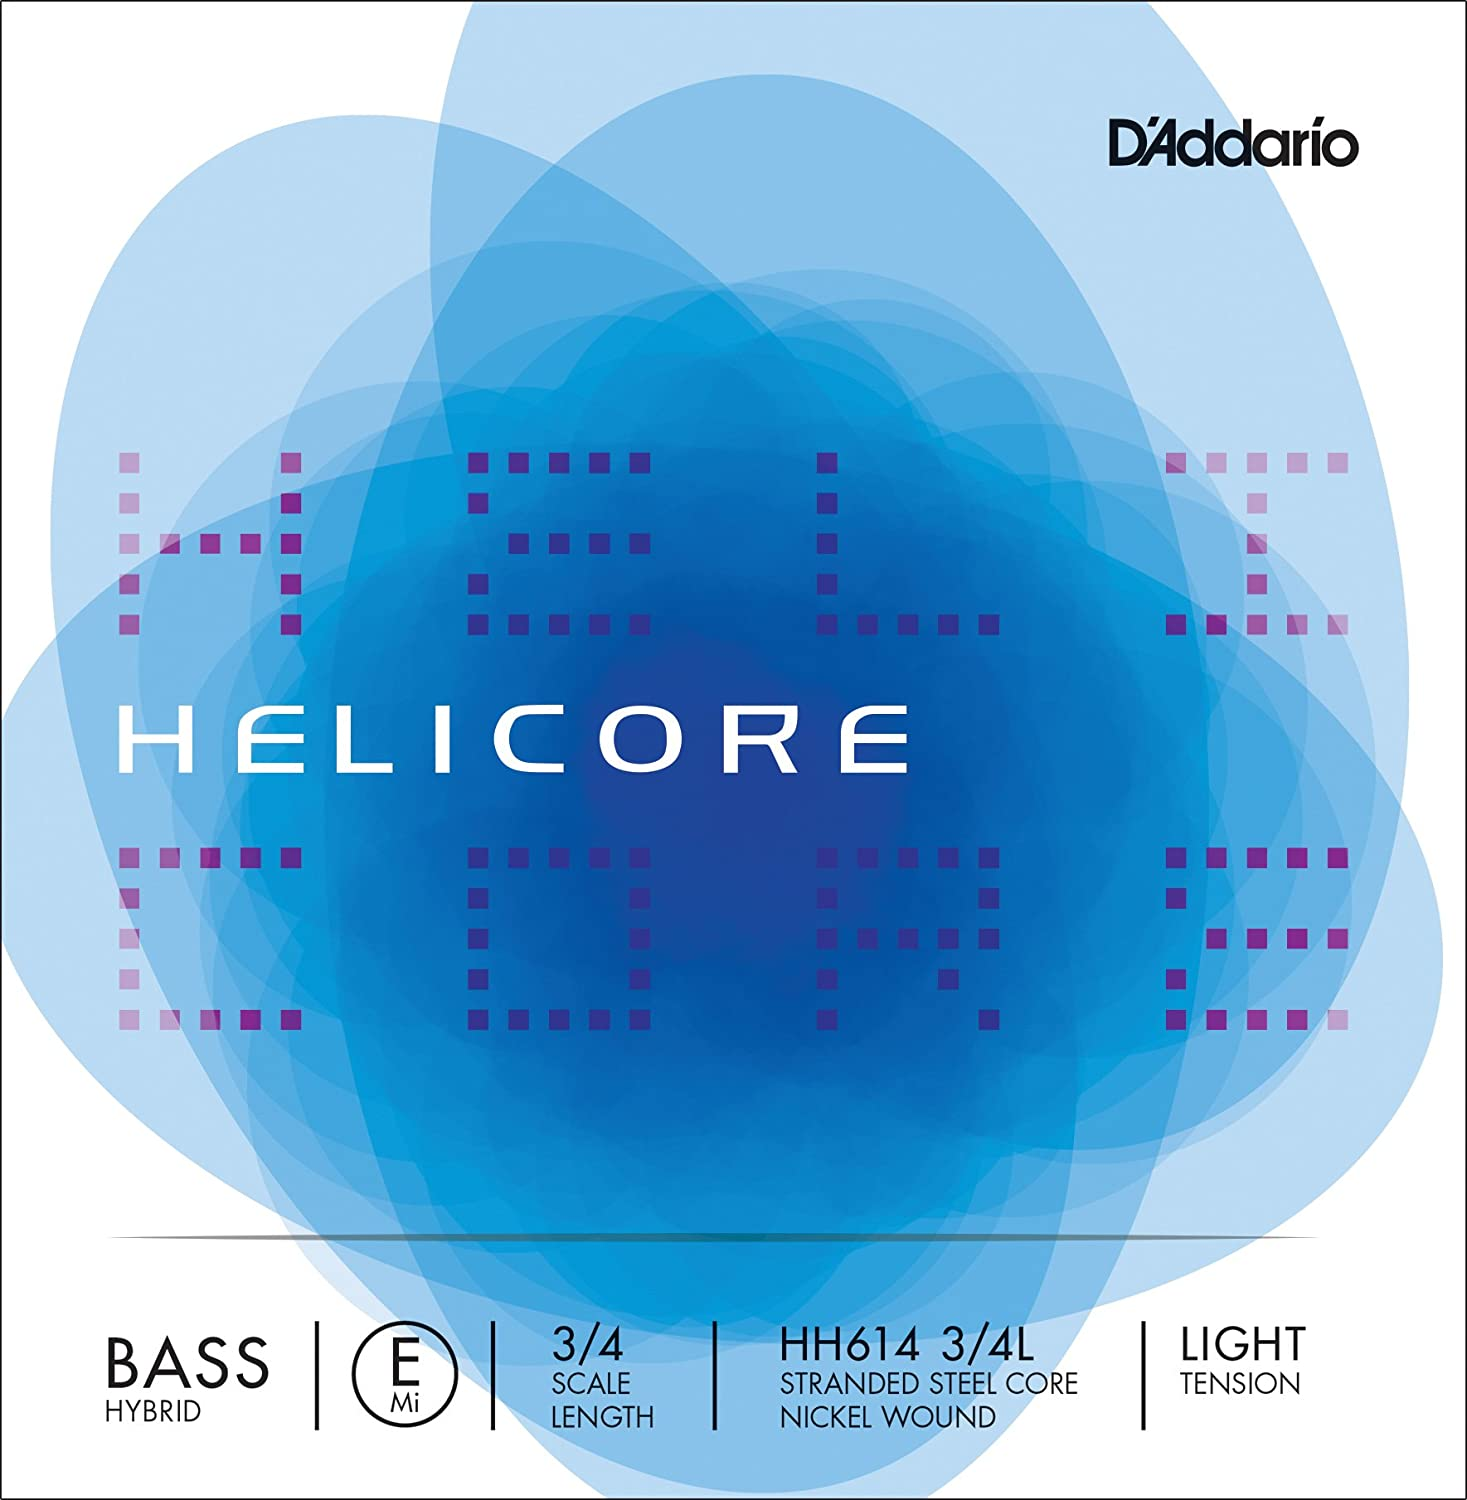 D'Addario Helicore Hybrid Bass Single E String, 3/4 Scale, Light Tension D' Addario HH614 3/4L